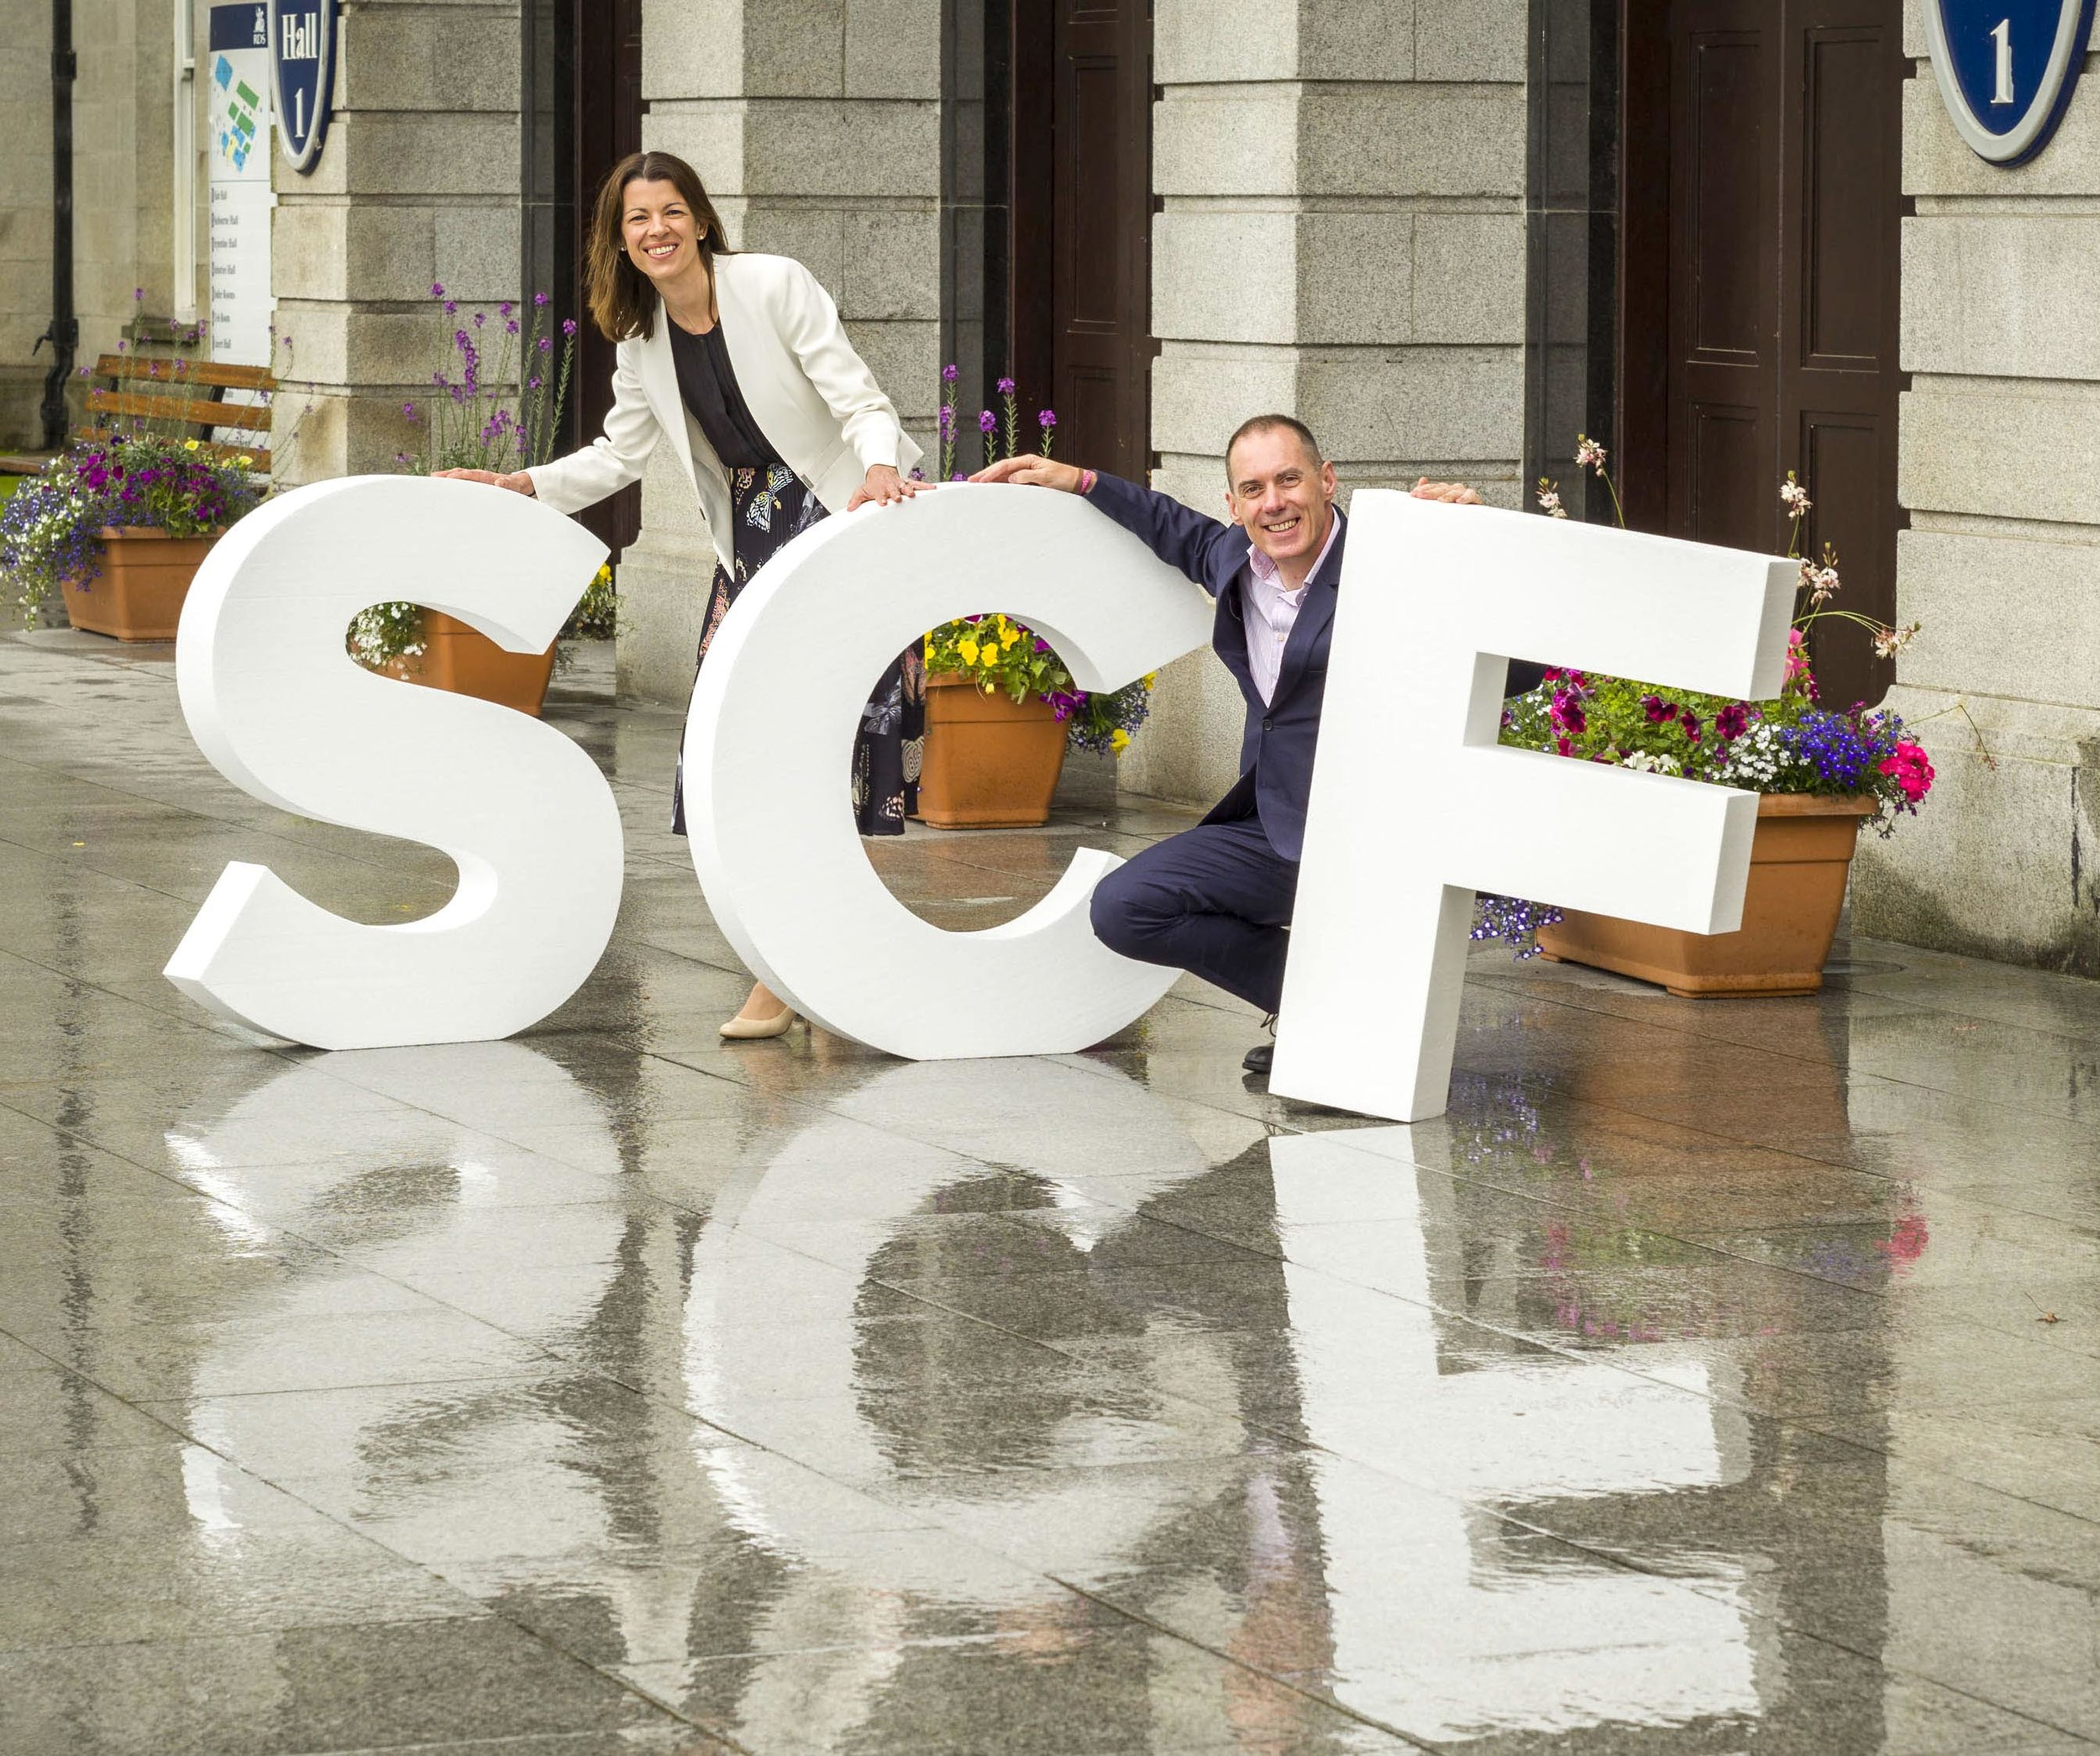 Pictured at the announcement of the 7th Secure Computing Forum that is taking place at The RDS in Dublin on Thursday, 12th September 2019: Roberta McCrossan, Group Marketing Director, DataSolutions & Michael O'Hara, Group Managing Director, DataSolutions.